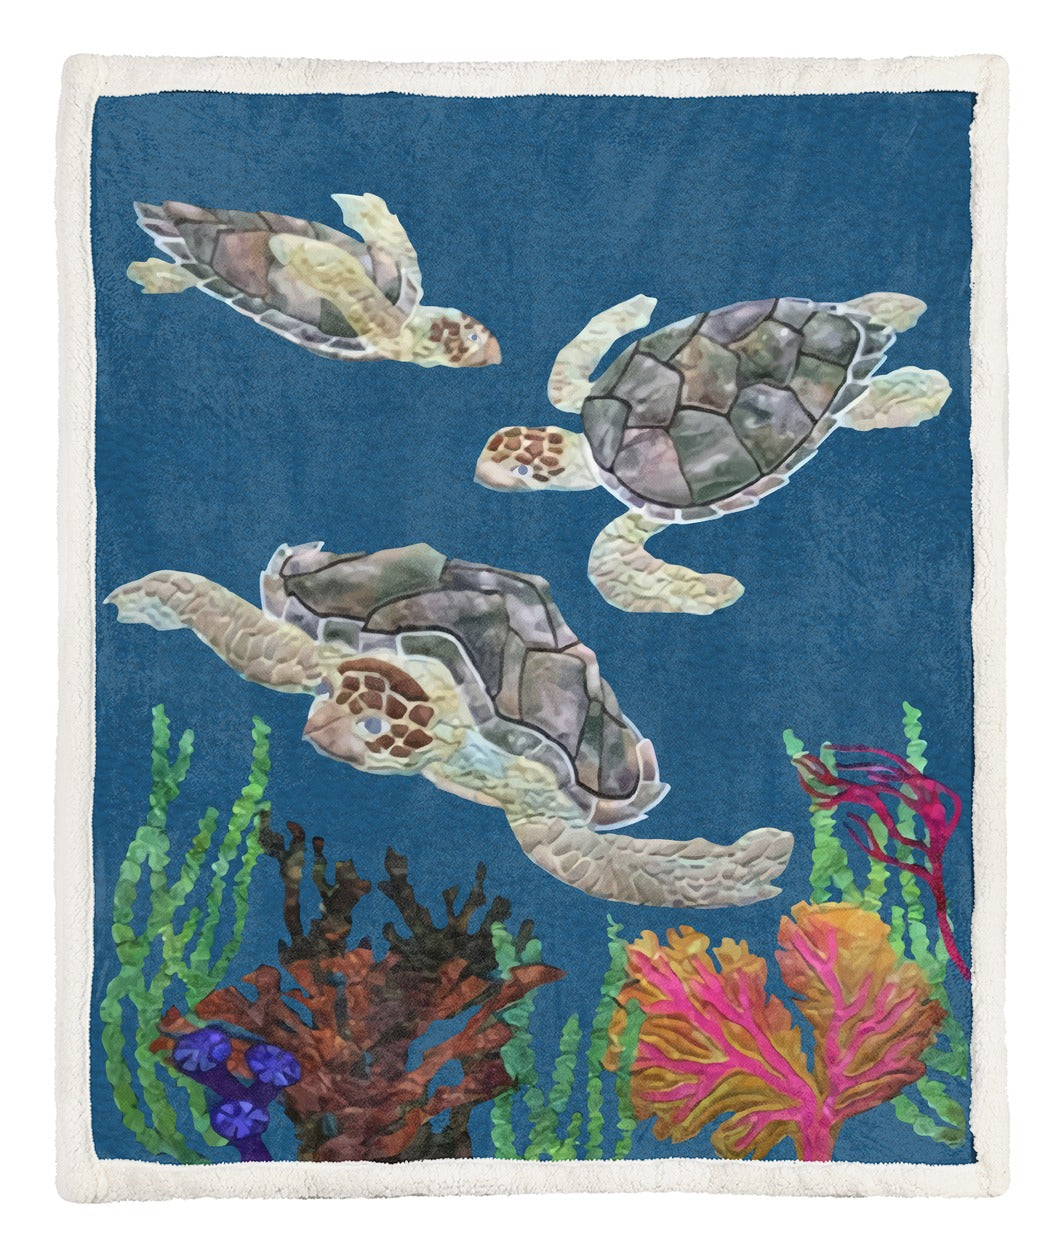 turtle-throw-blanket-tabccc19103916